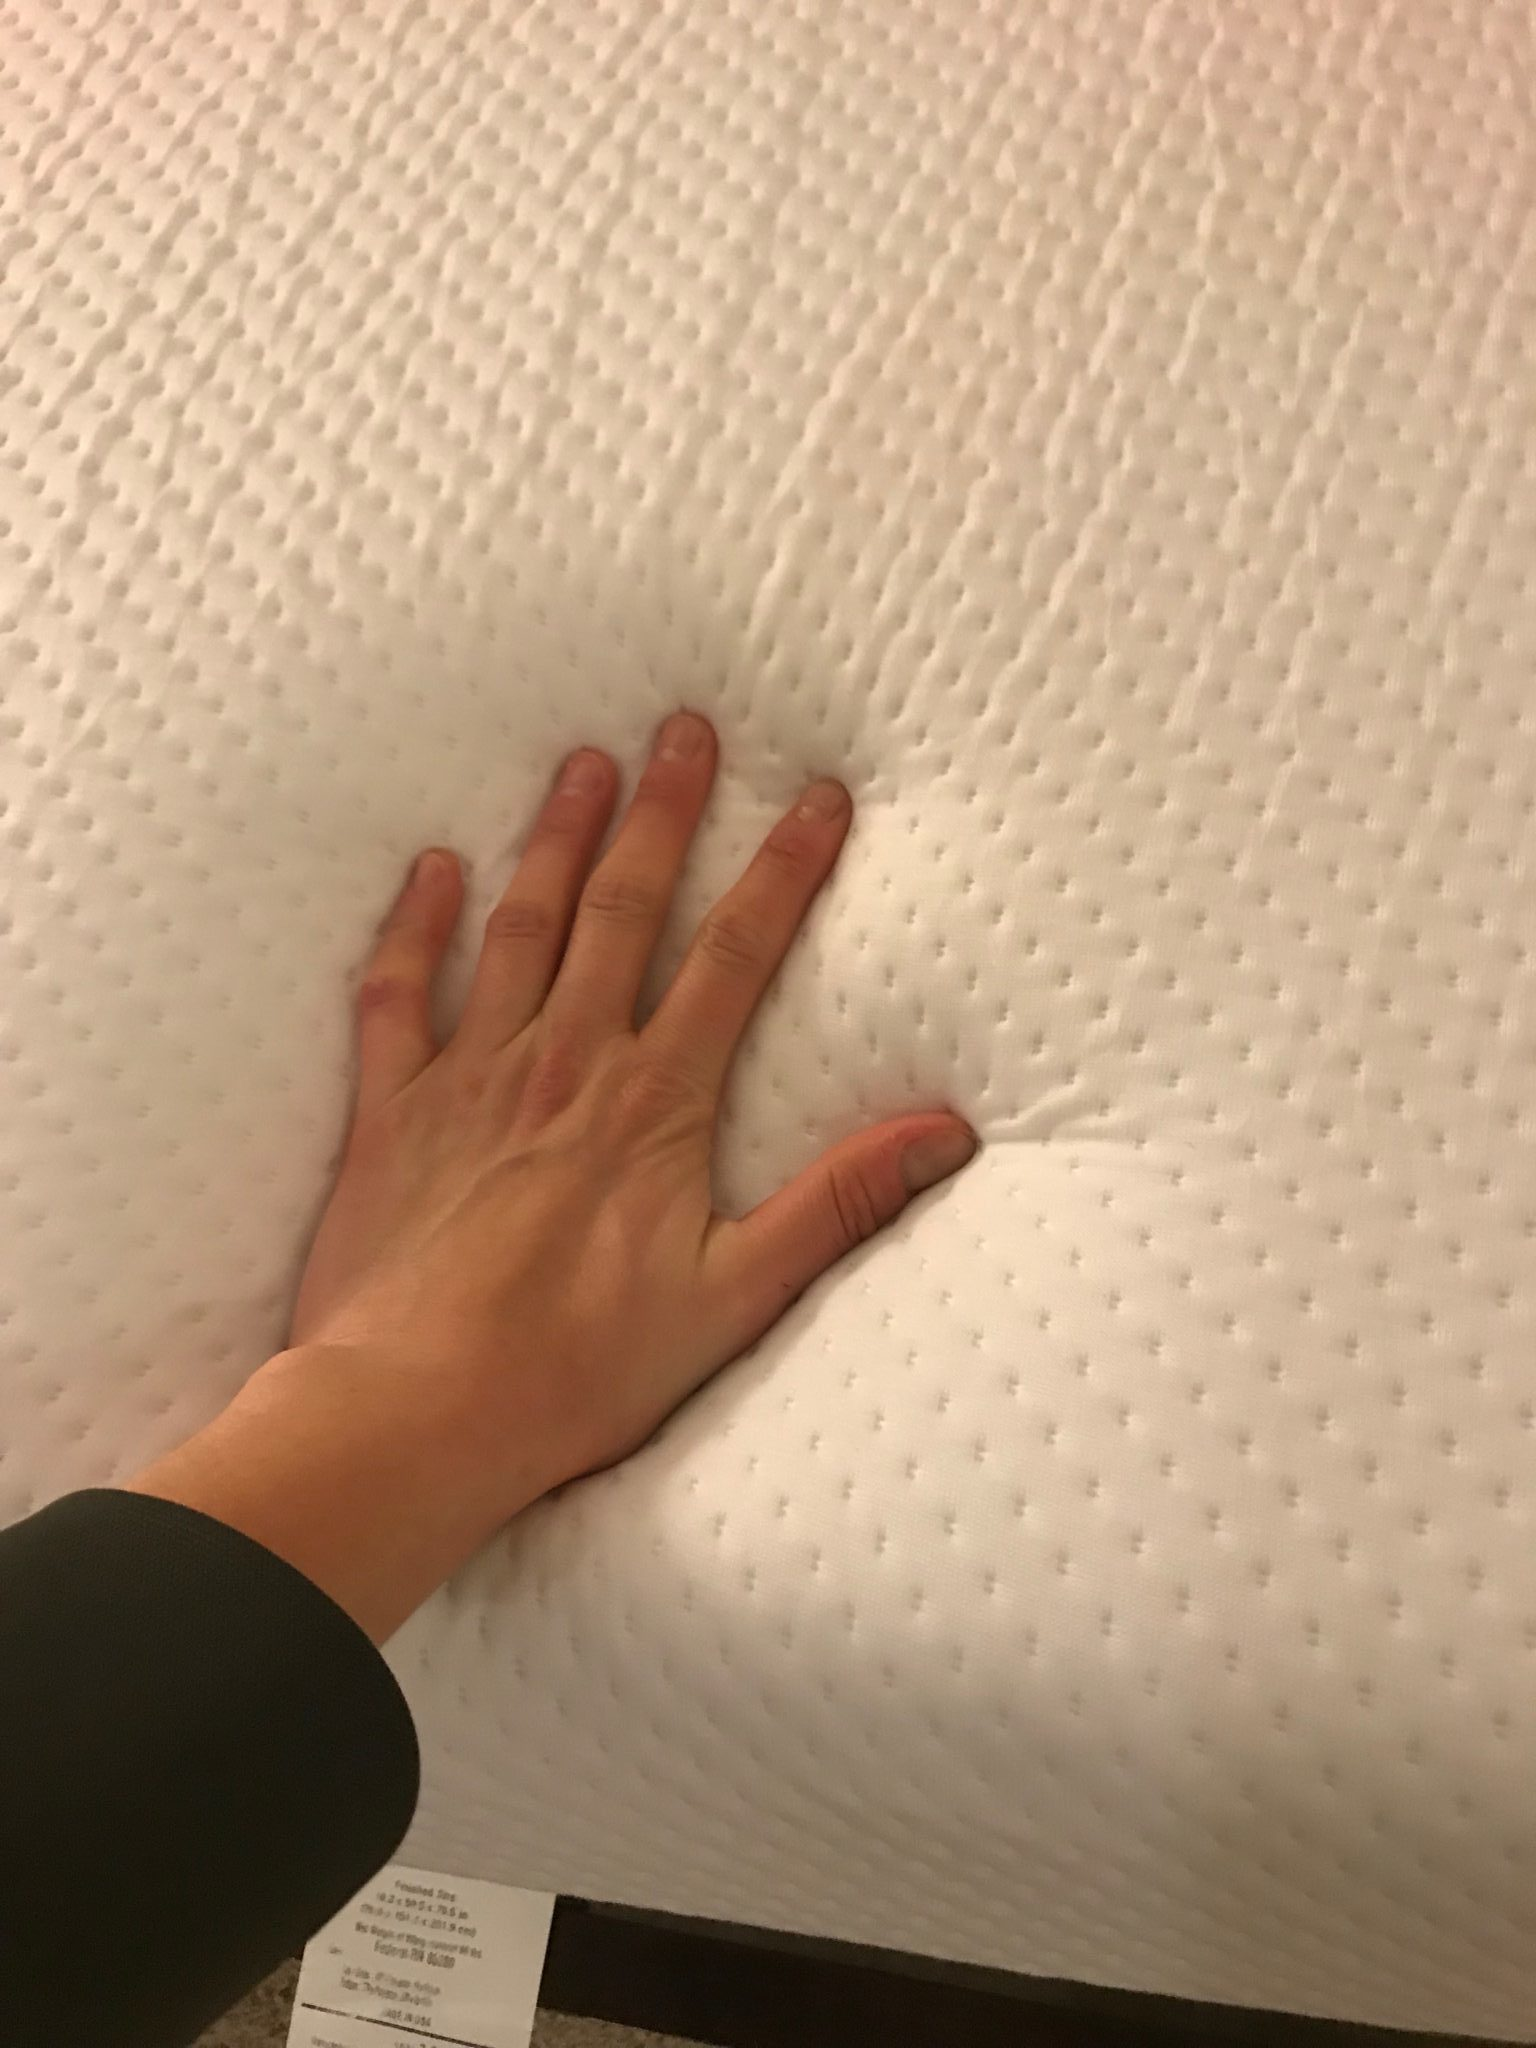 Unboxing and first impressions of the Blello Mattress. We like the cover and materials